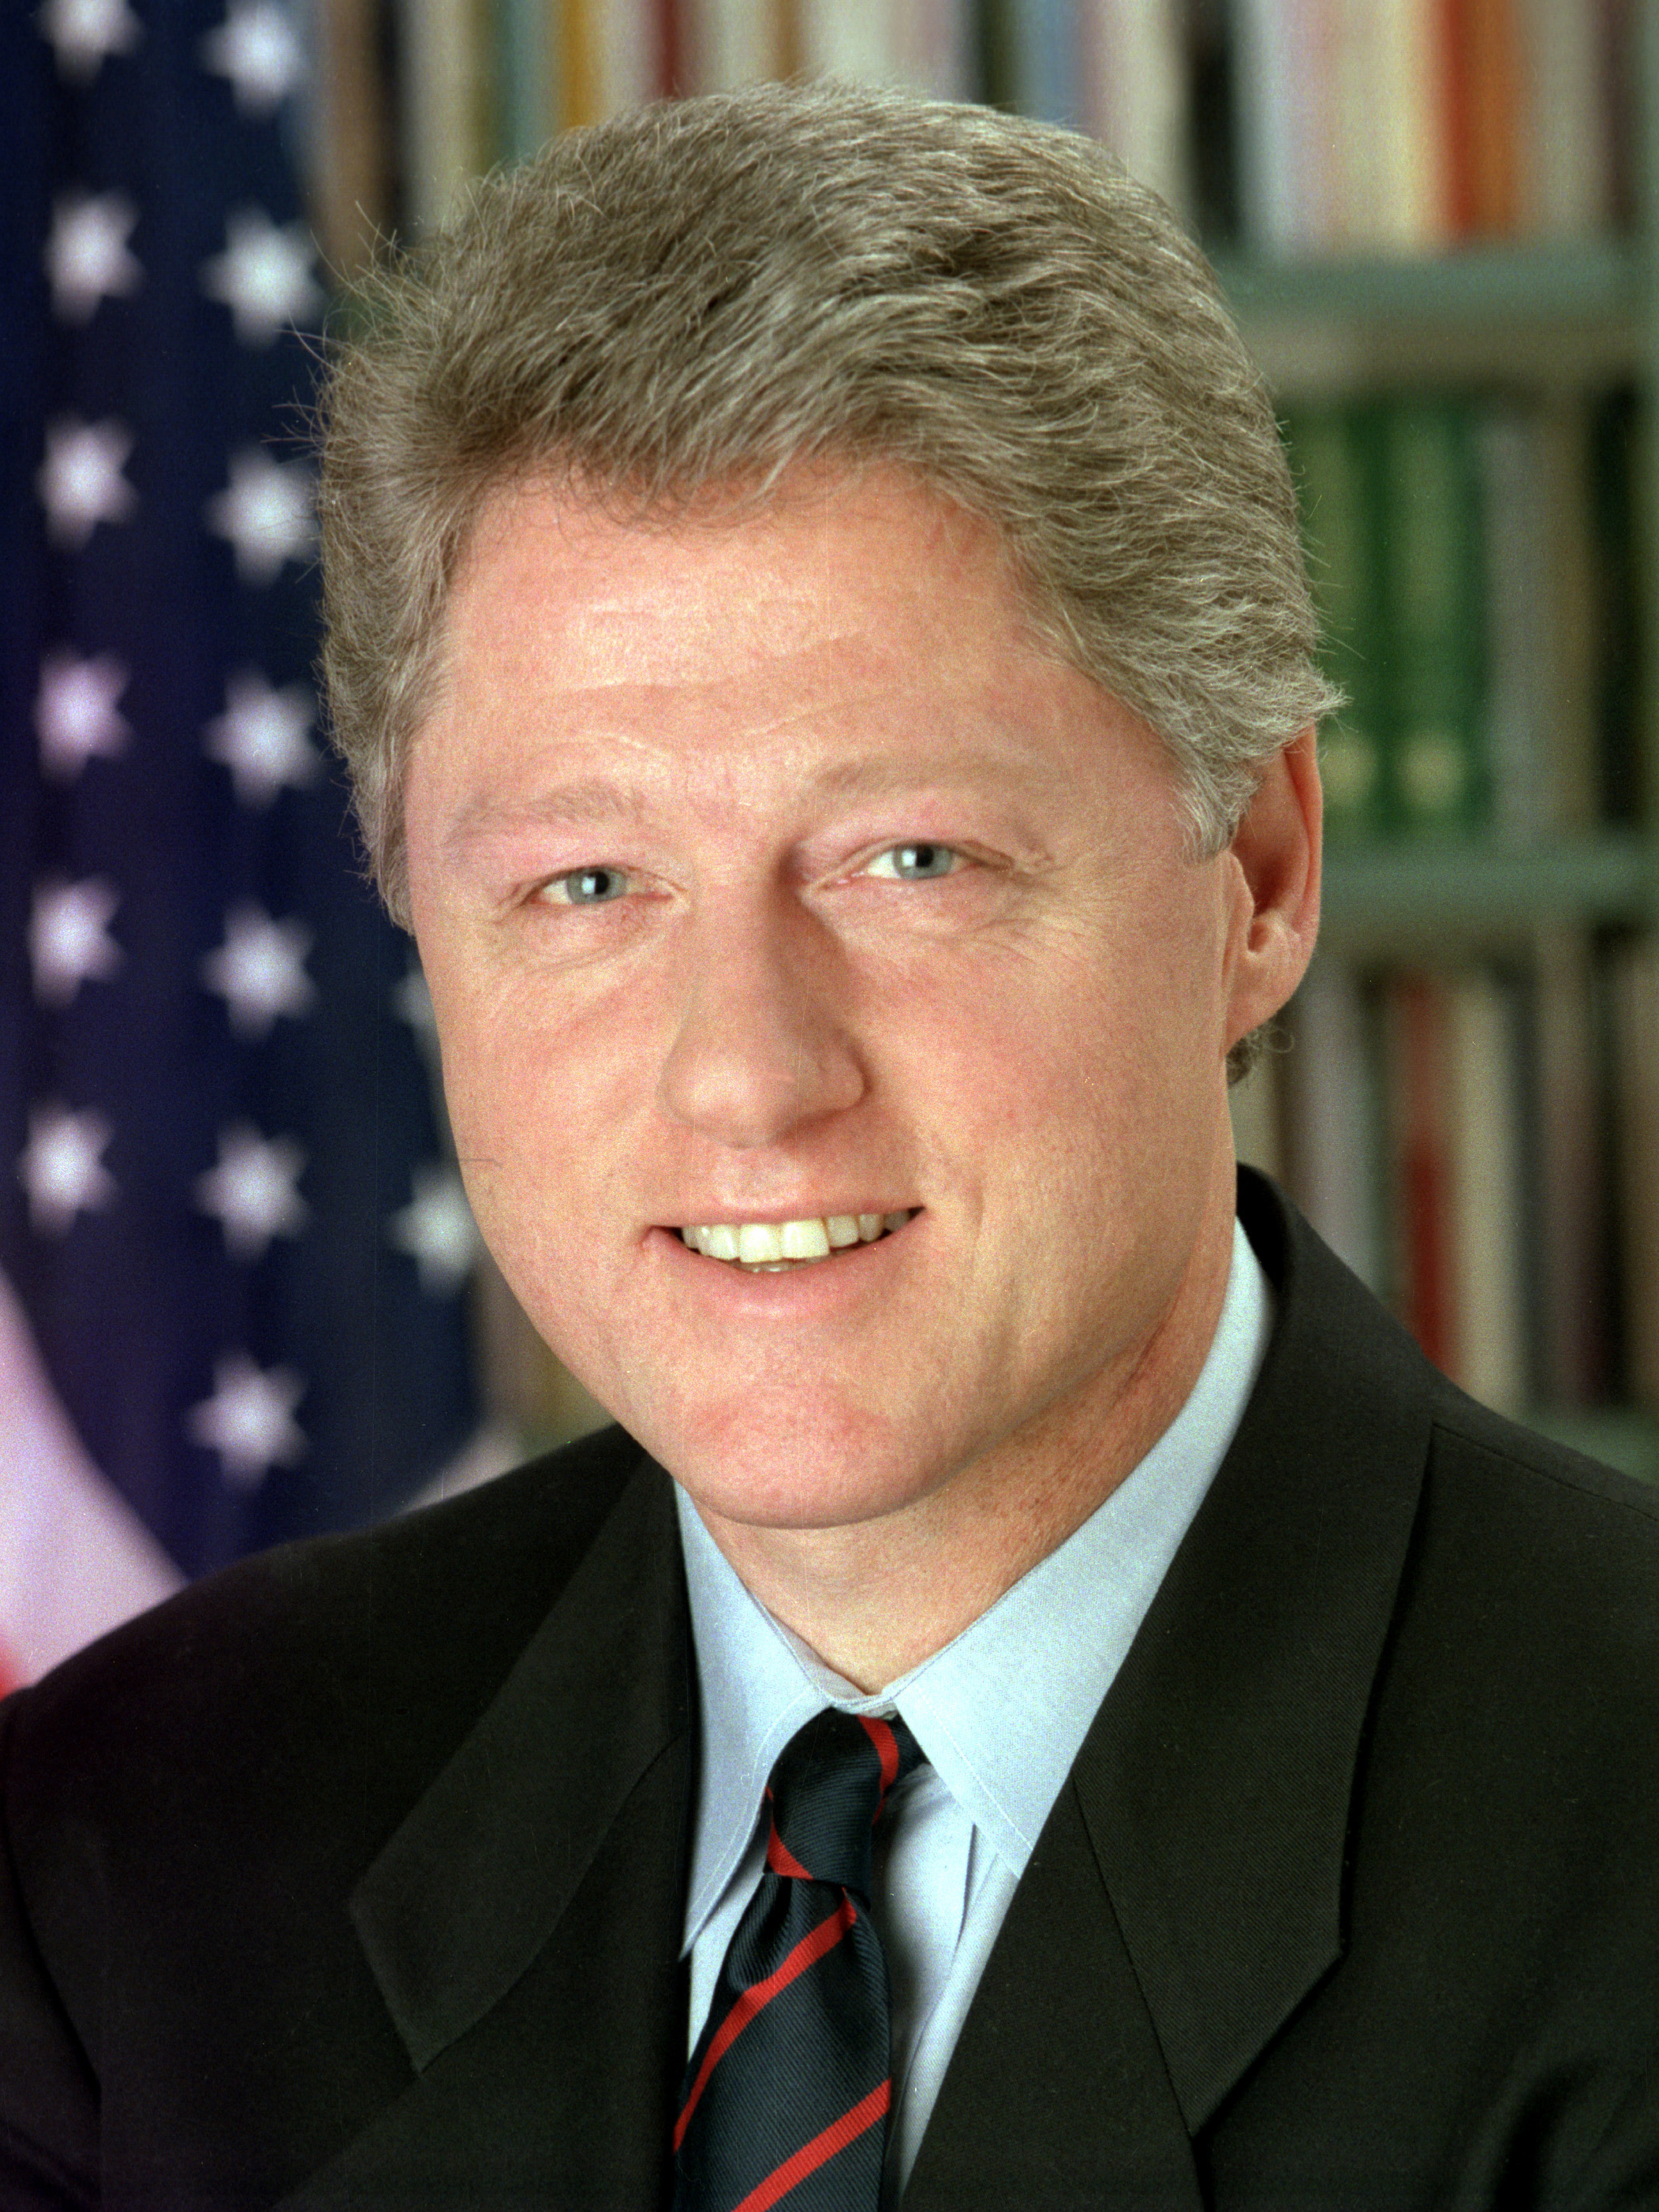 President Bill Clinton in 1993. Photo by Bob McNeely, The White House/Wikimedia Commons